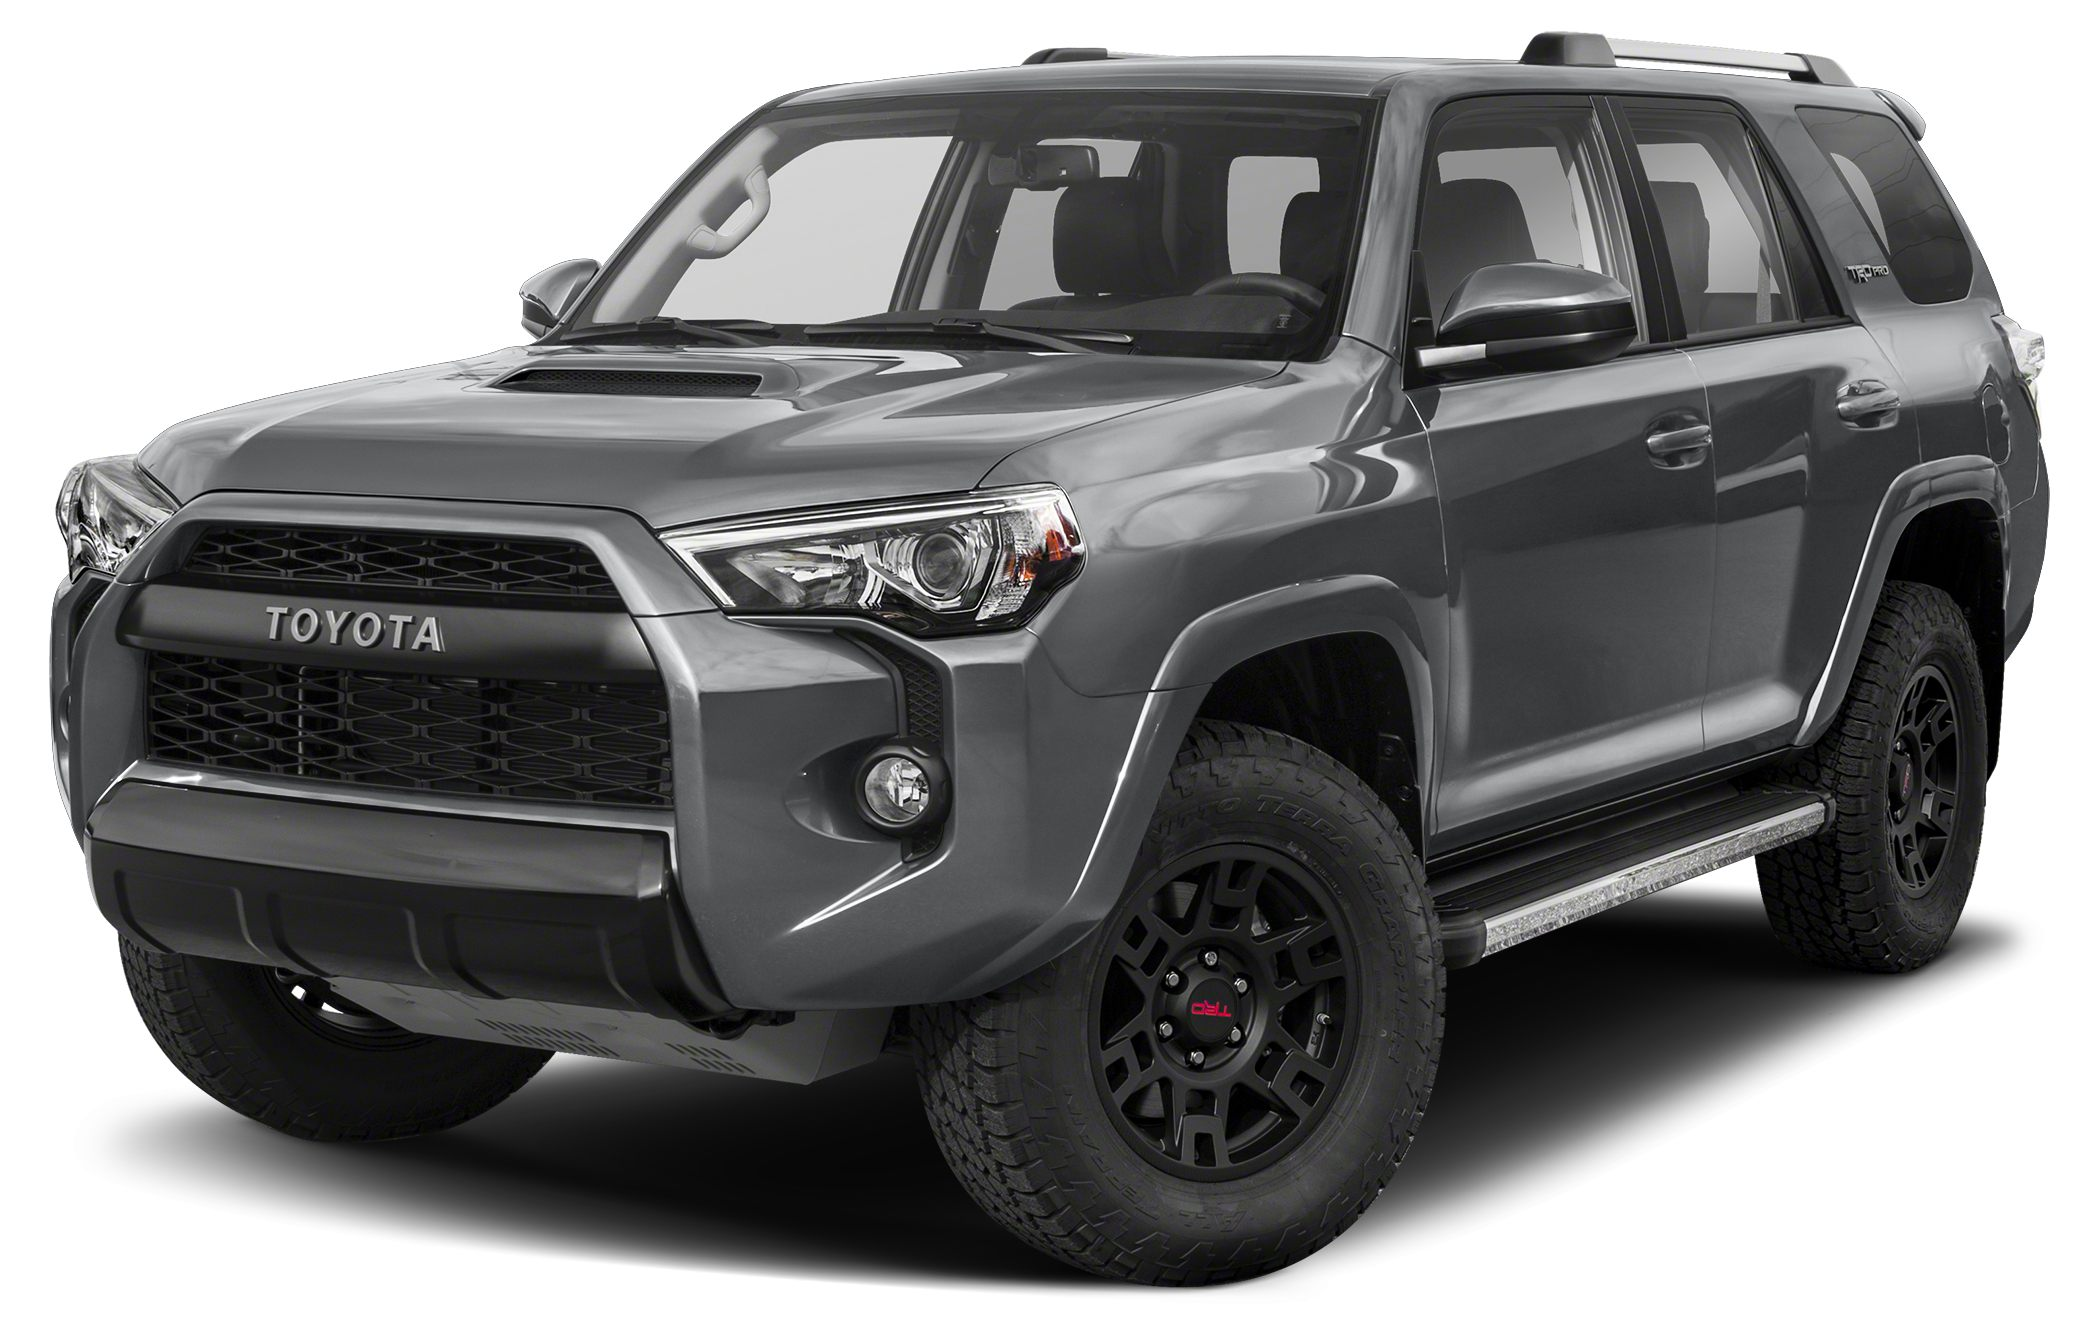 2017 Toyota 4Runner TRD Pro Check out this 2017 Feature-packed and decked out Top features inclu